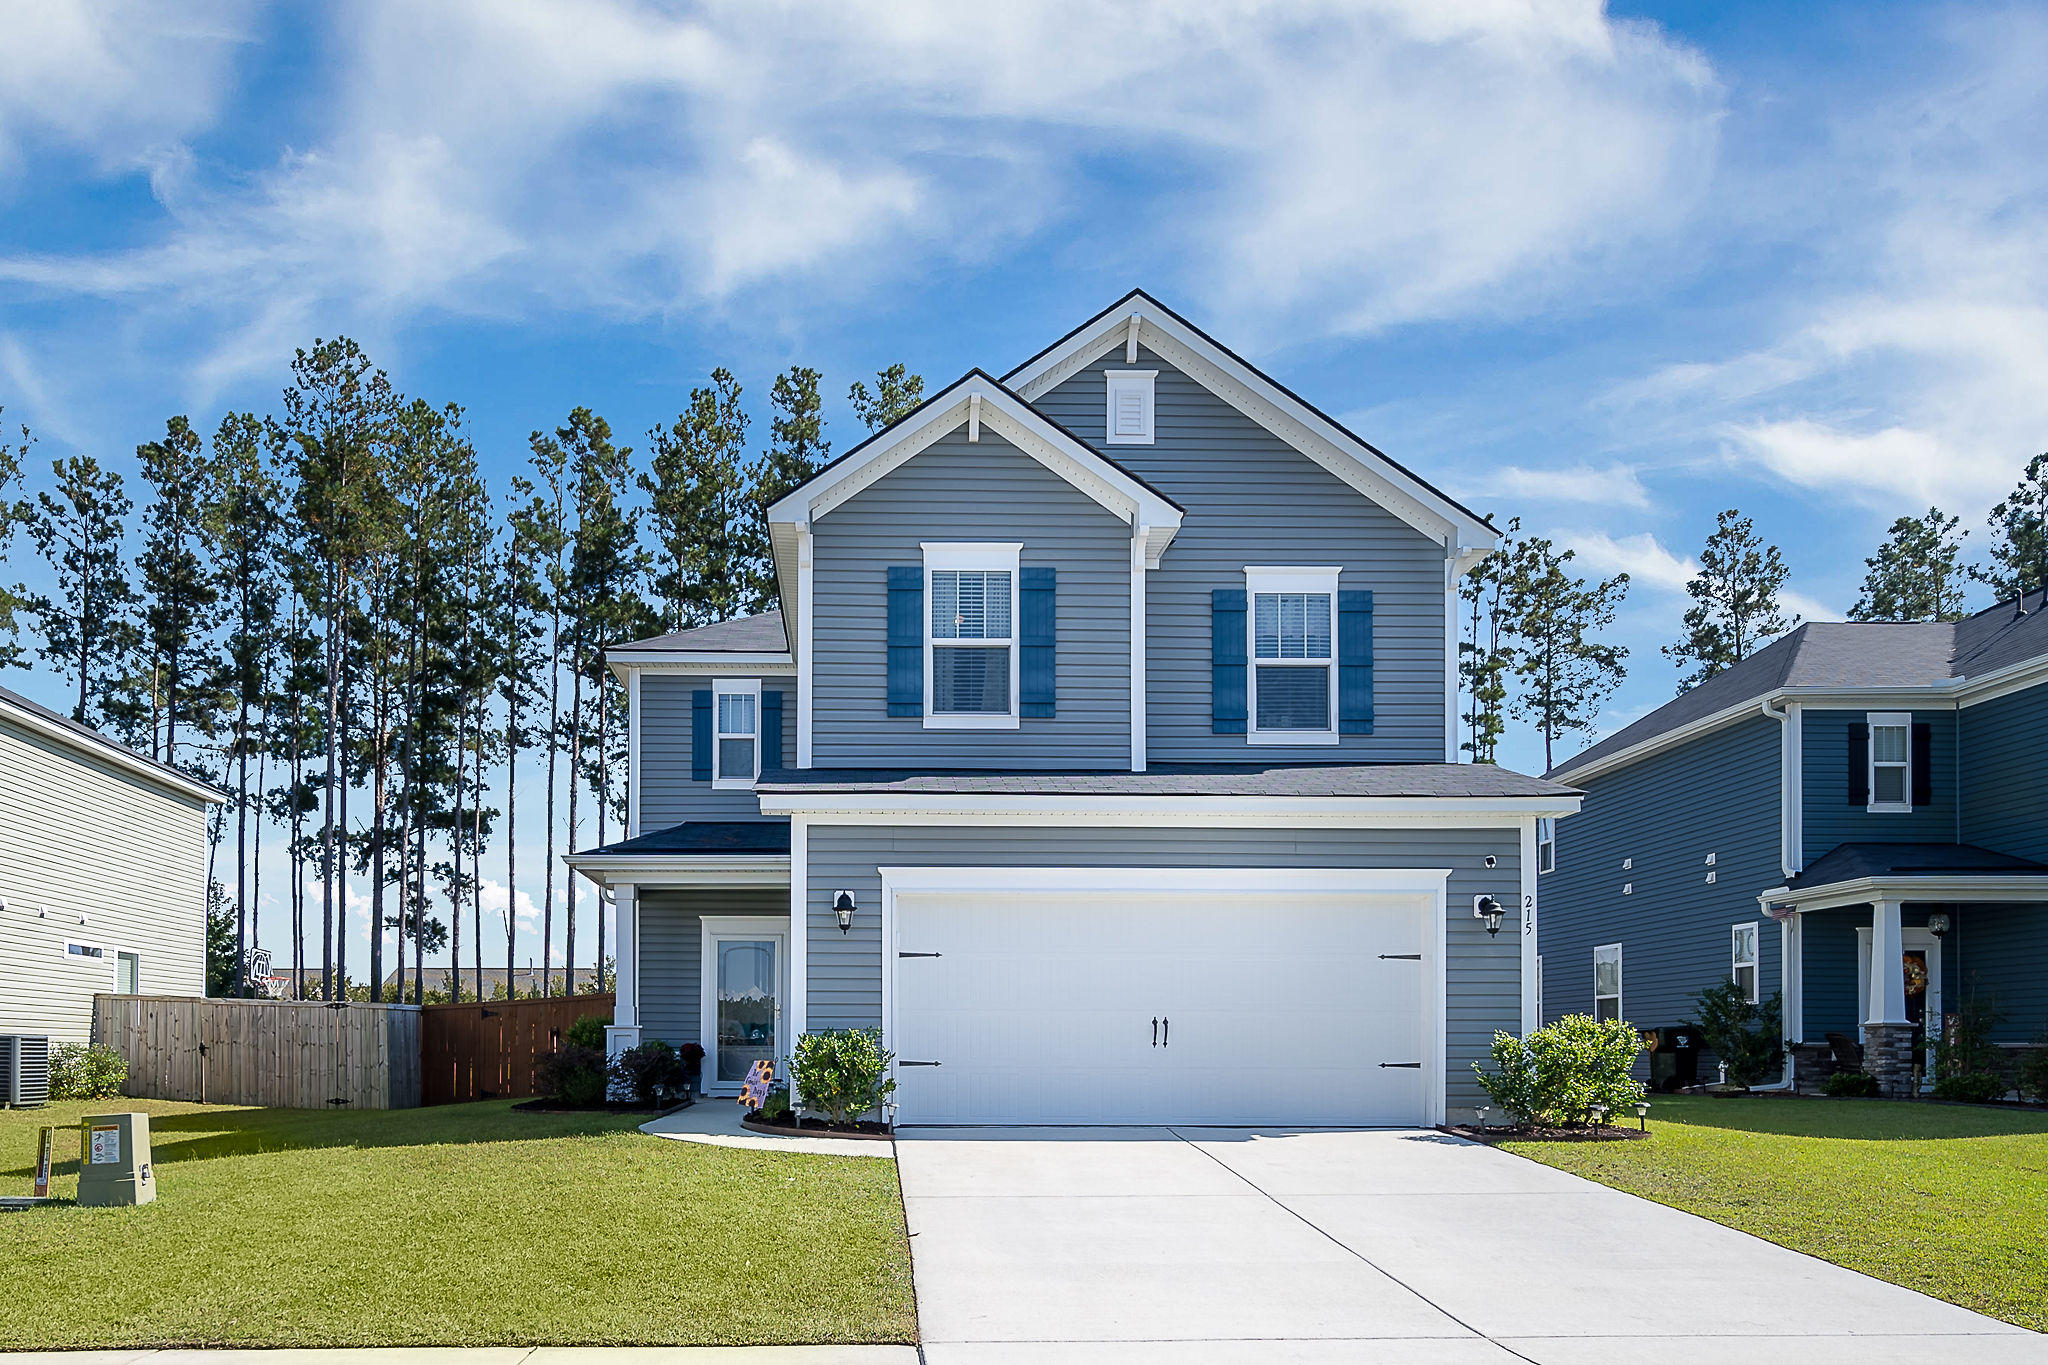 215 Basket Grass Lane Summerville, Sc 29486